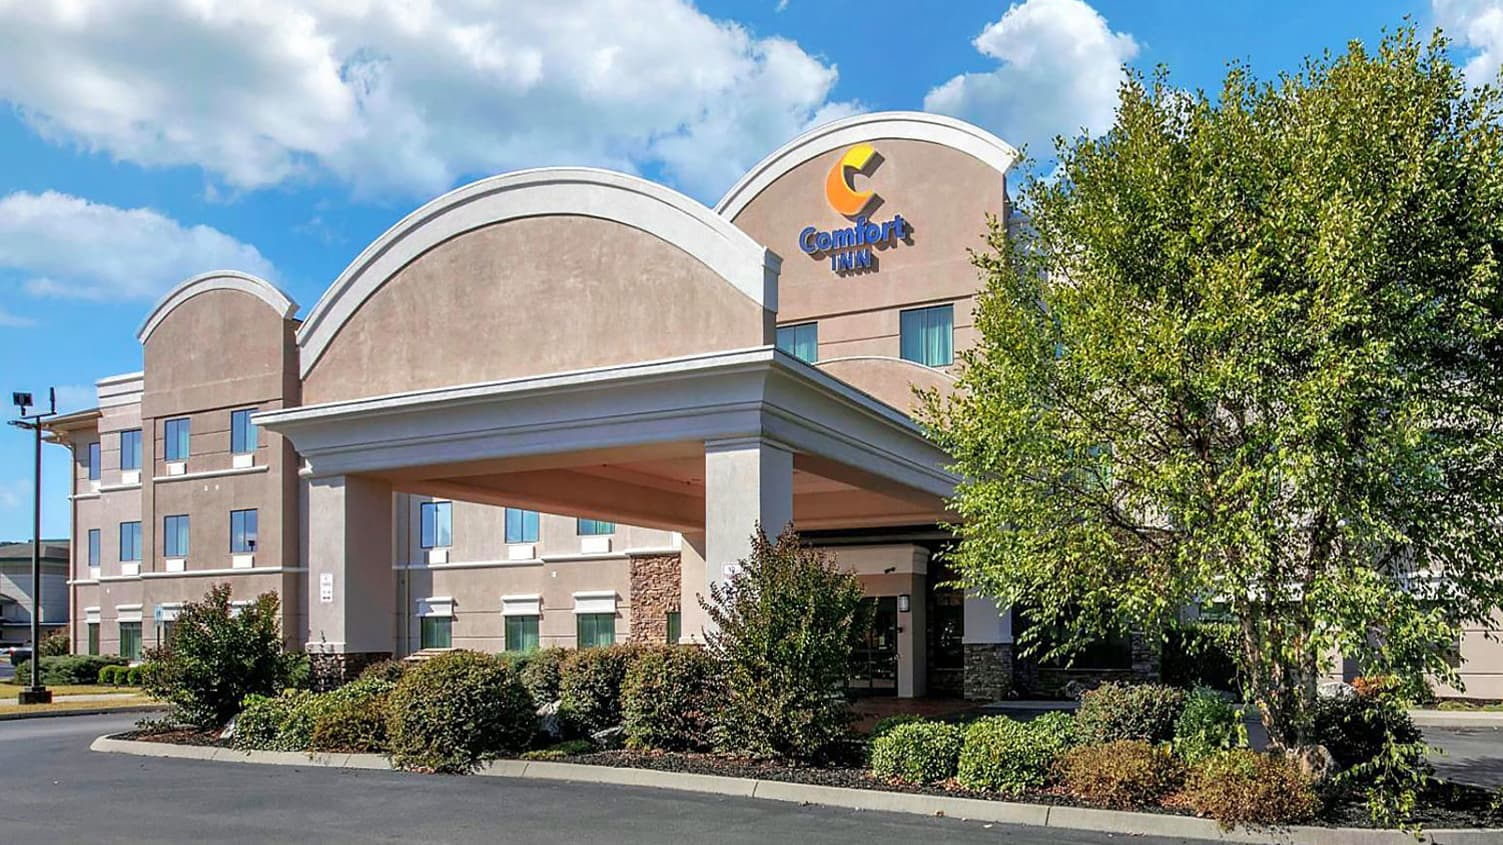 Comfort Inn an Award-Winning Hotel in Powell - Knoxville North